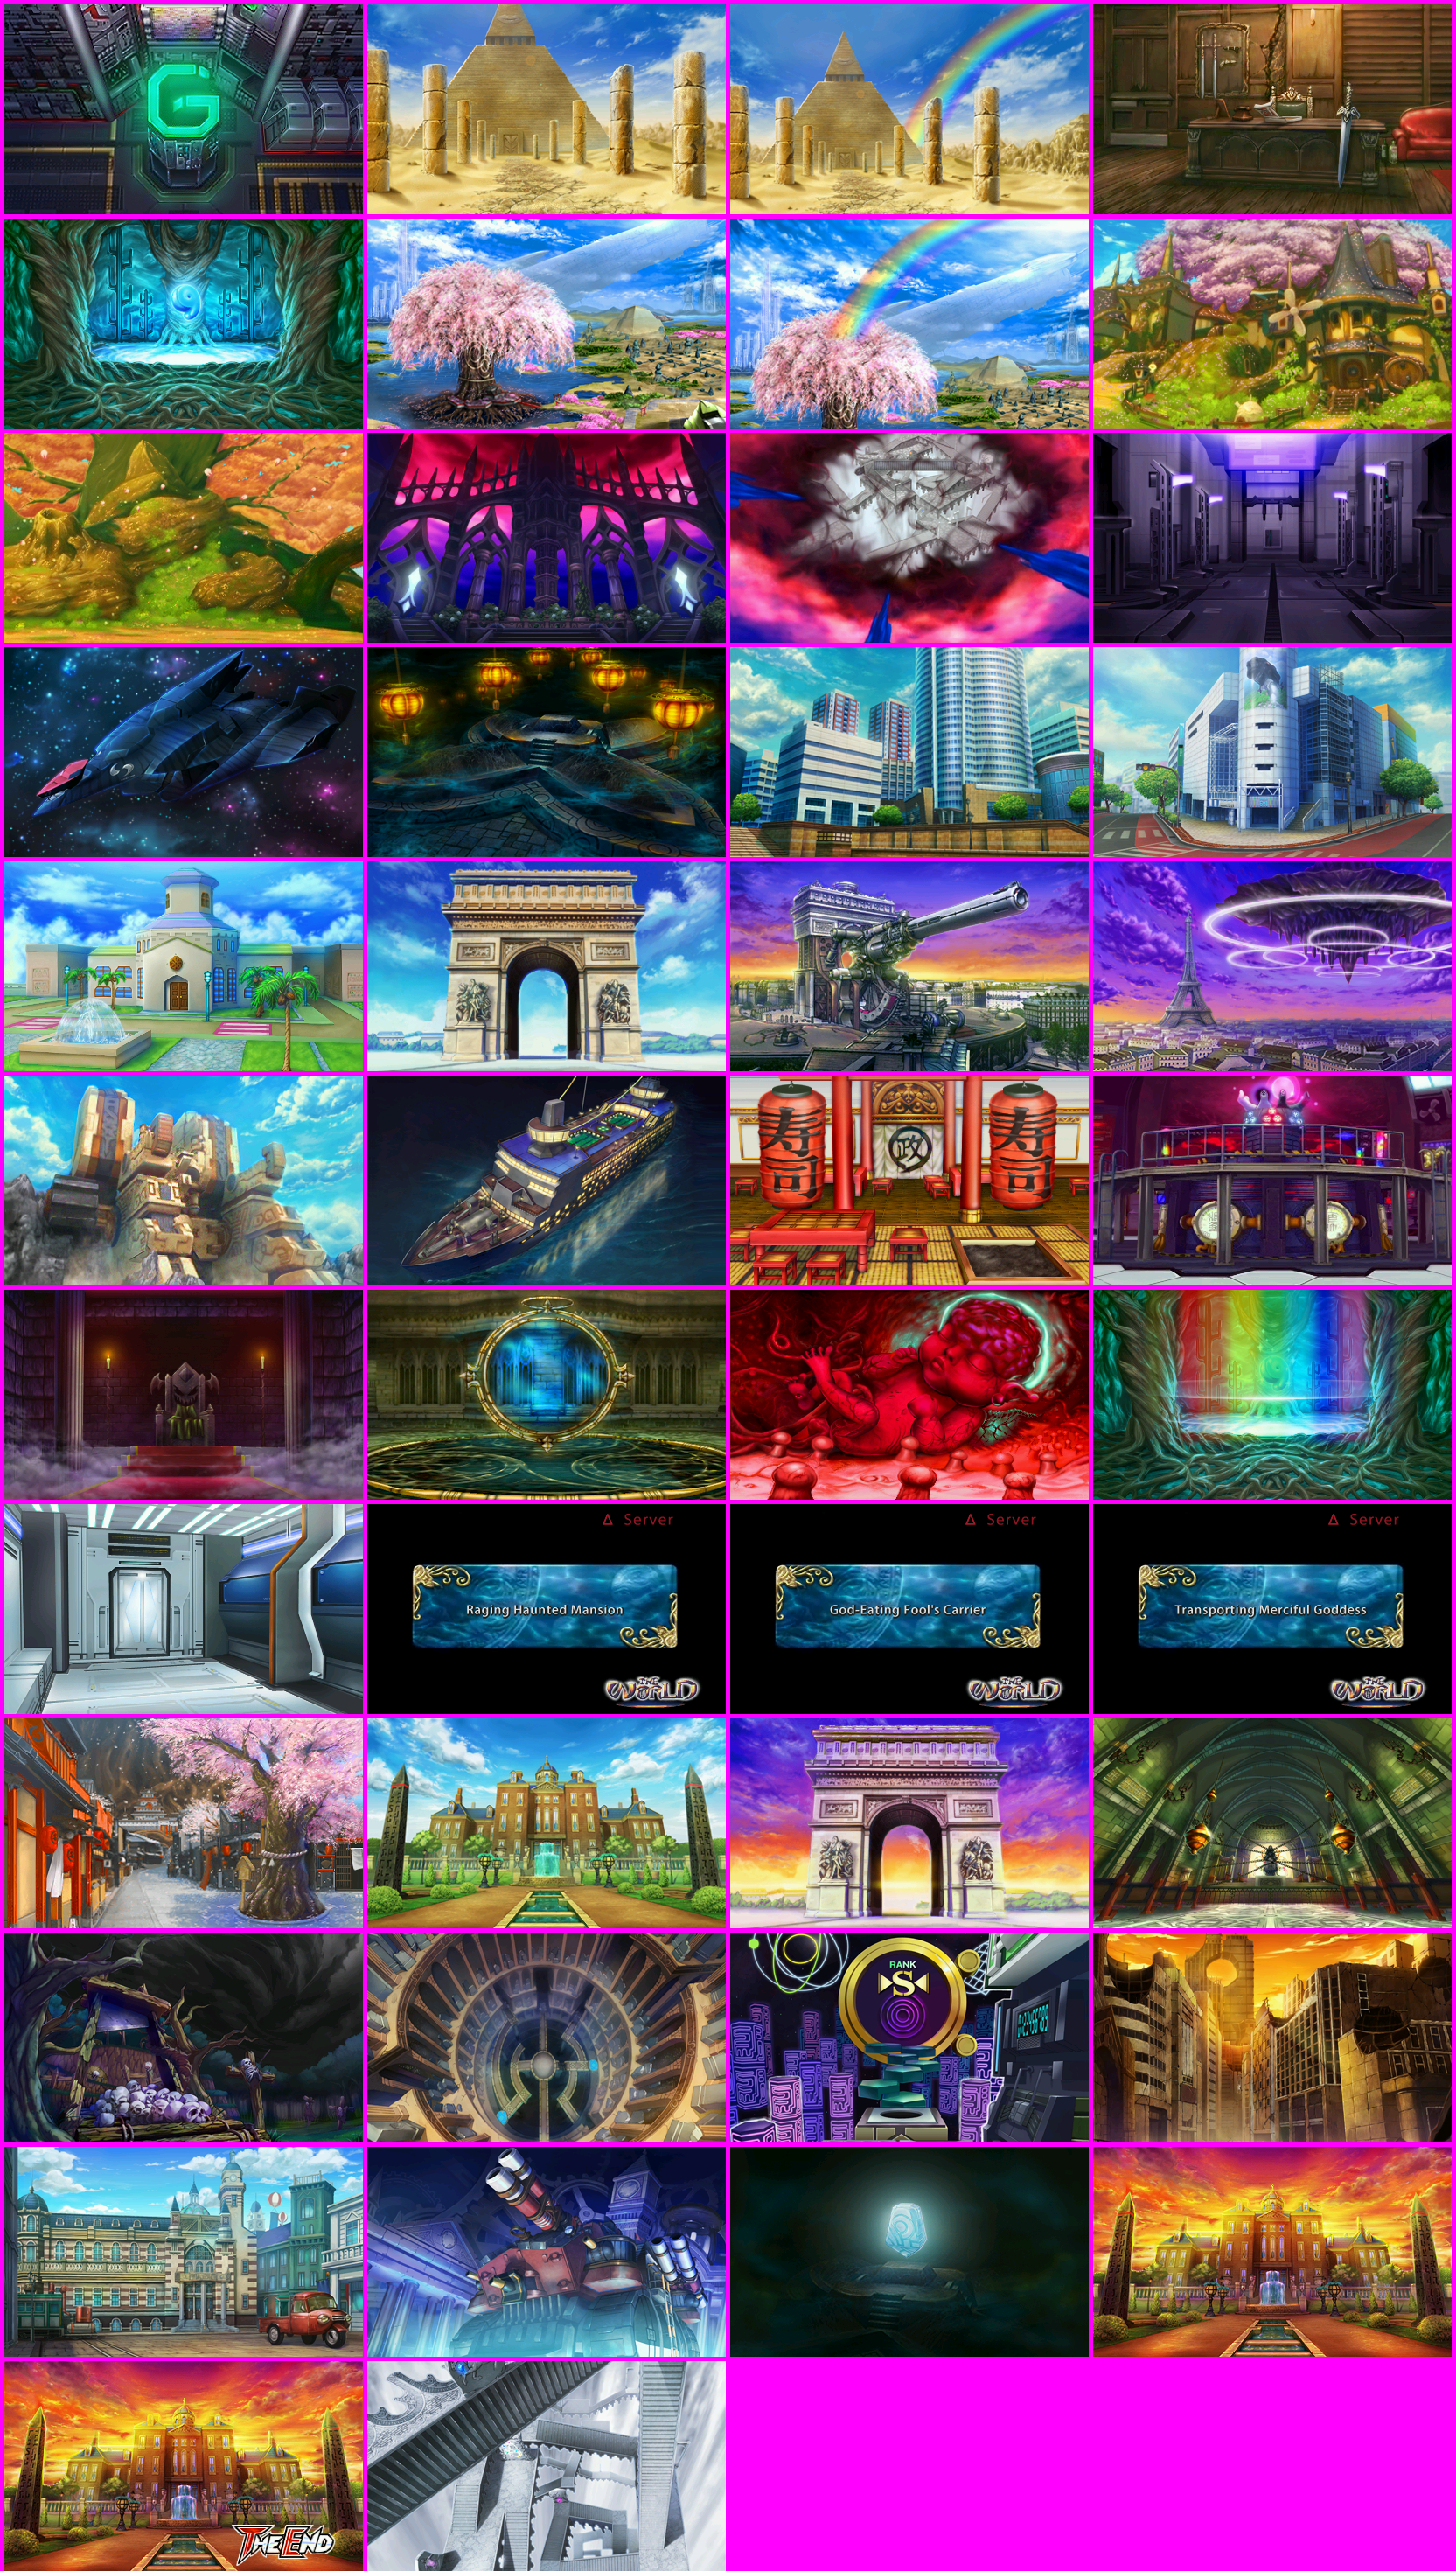 ... Resource - Full Sheet View - Project X Zone - Event Backgrounds